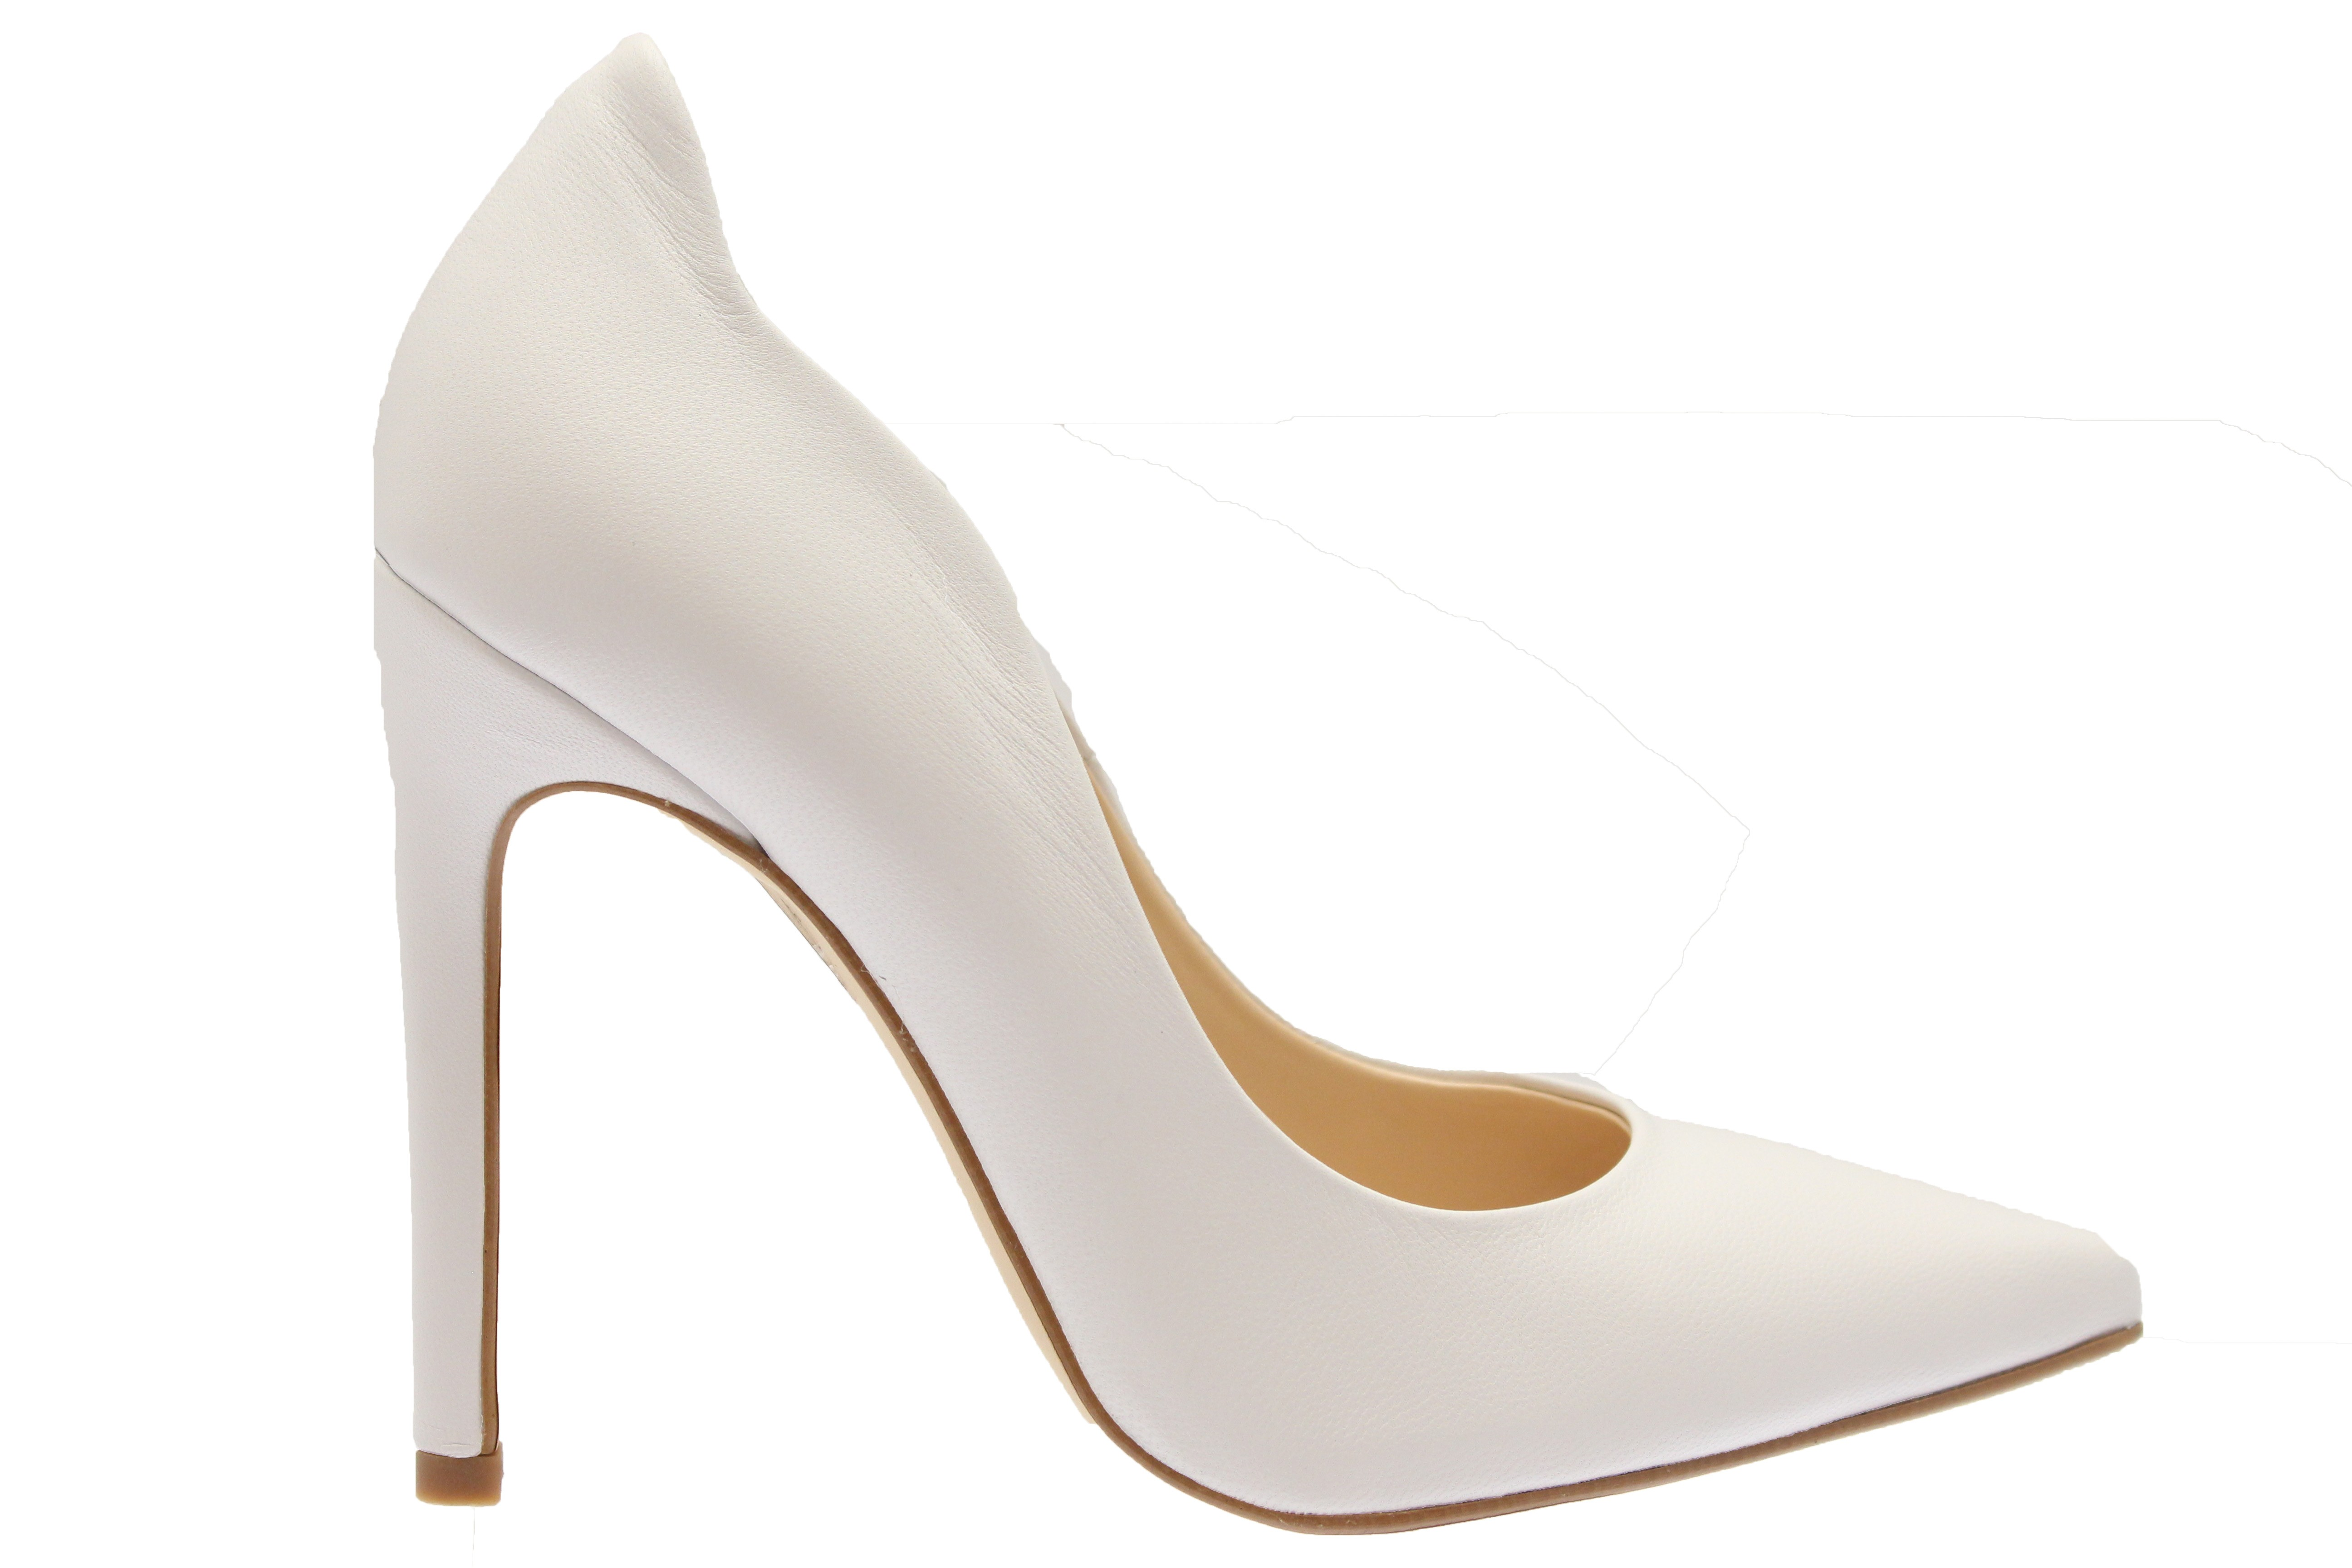 De Paris Escarpin Femme Osmose Vague Note Romantique La En Blanc Shoes 6yYI7vfgbm